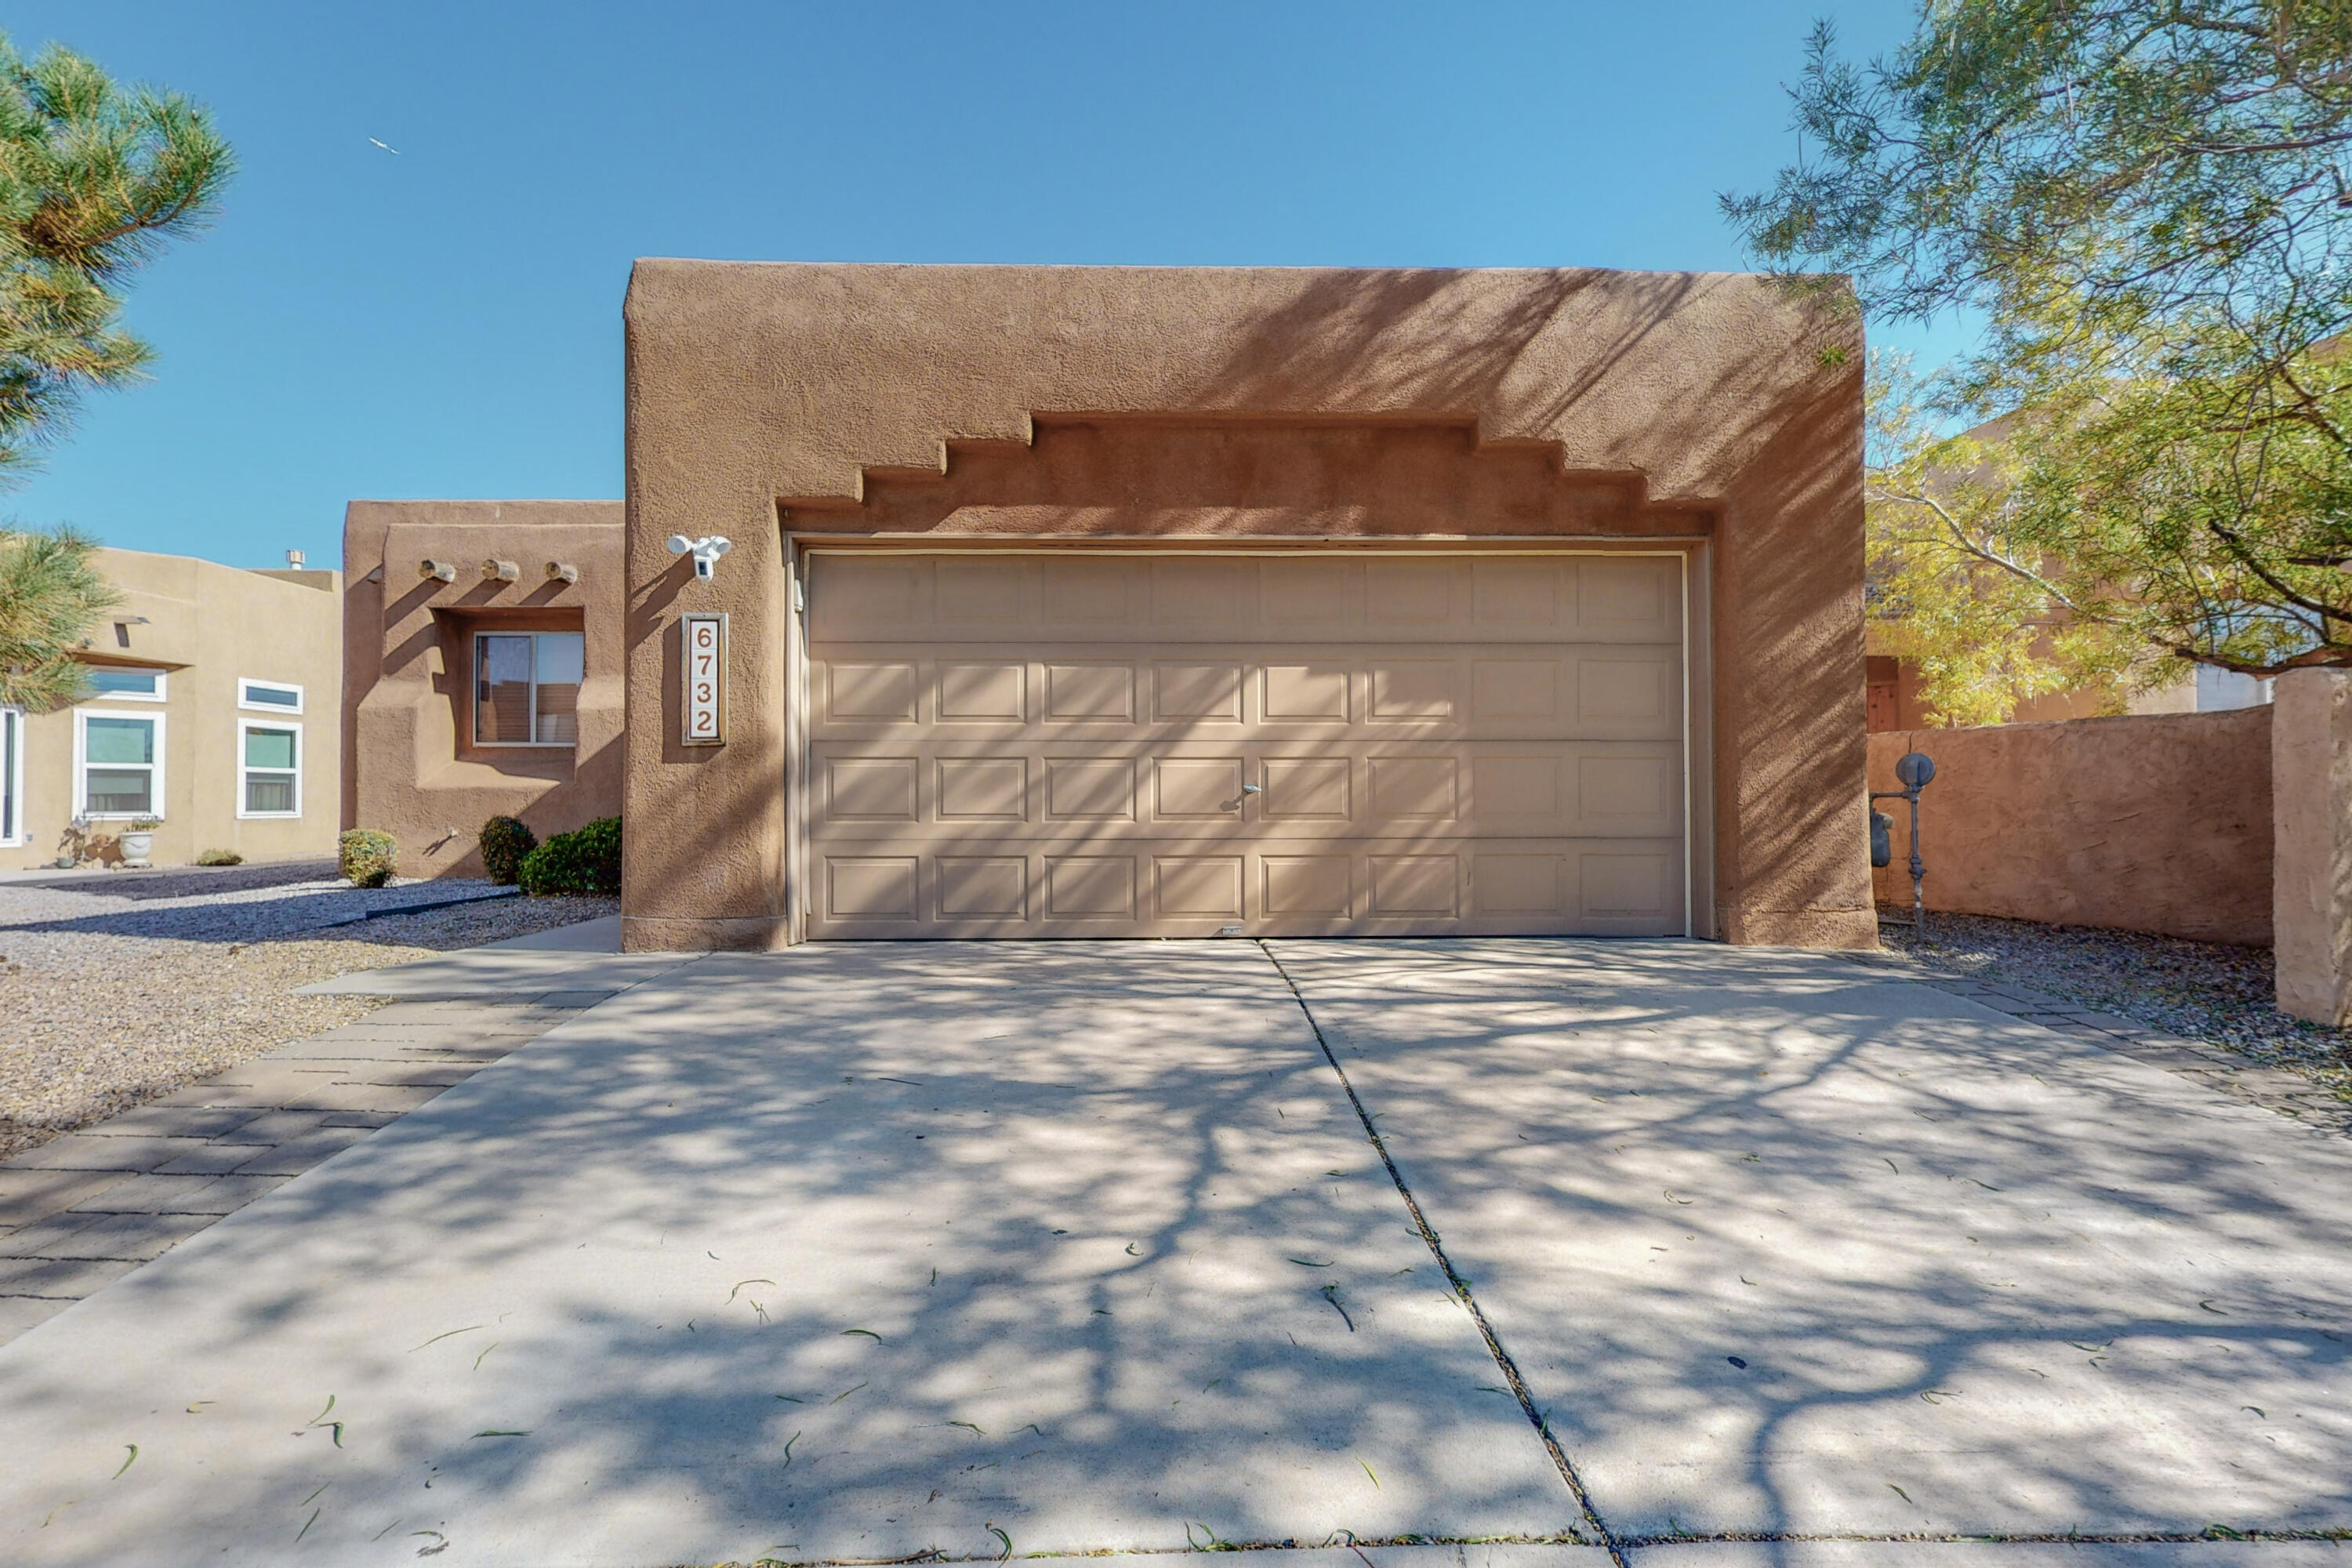 This turn key home is ready for its new owners.    This home is located in a desirable neighborhood with easy access to neighborhood parks, restaurants, shopping, freeway access and much more.  Schedule your showing today!!!